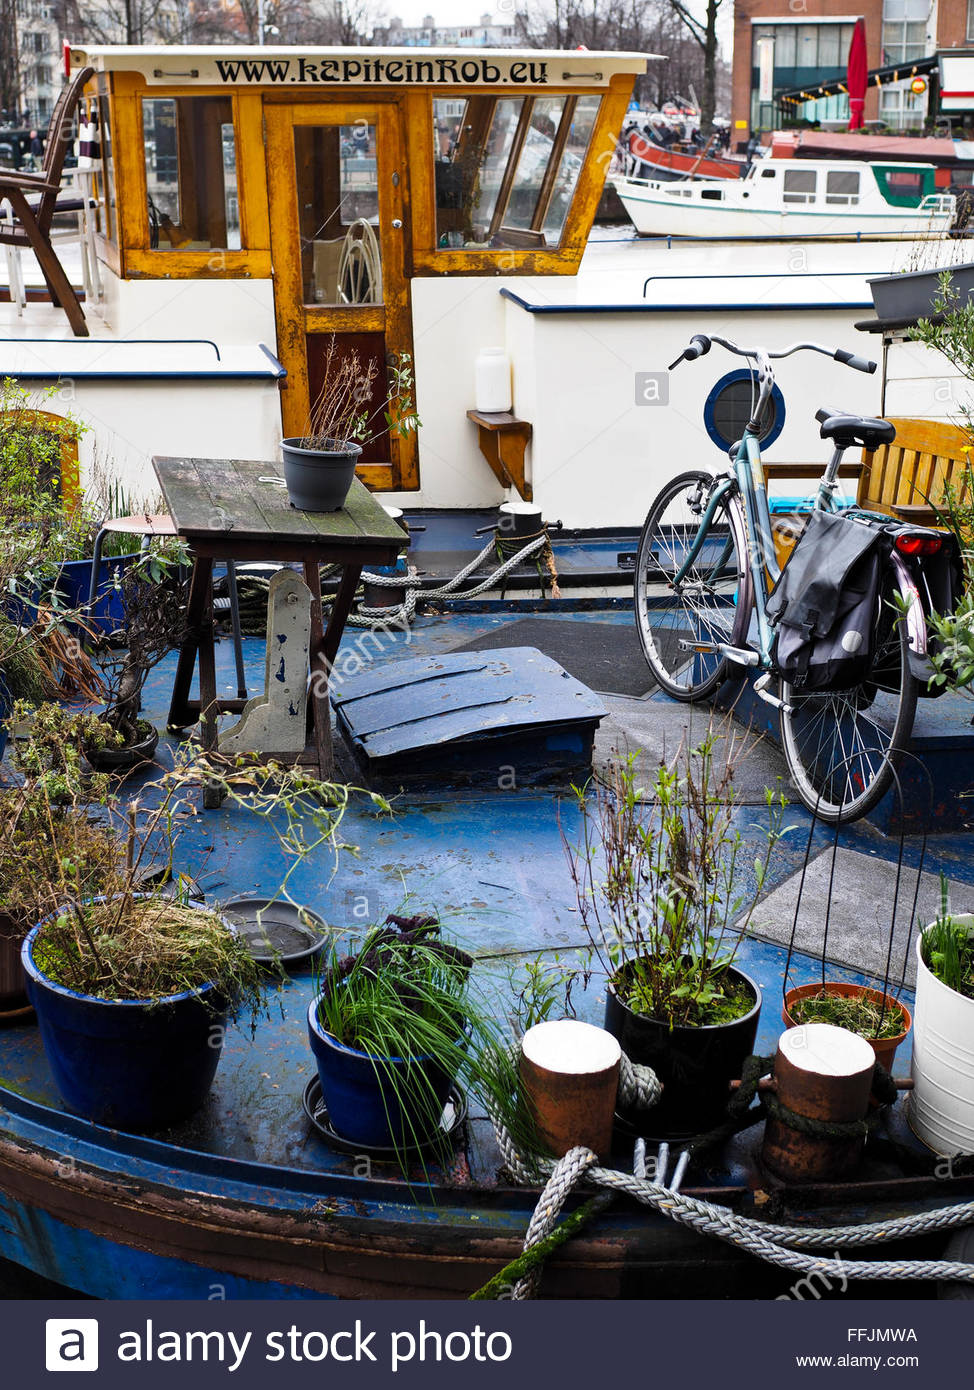 Bicycle on canal house boat, Amsterdam - Stock Image